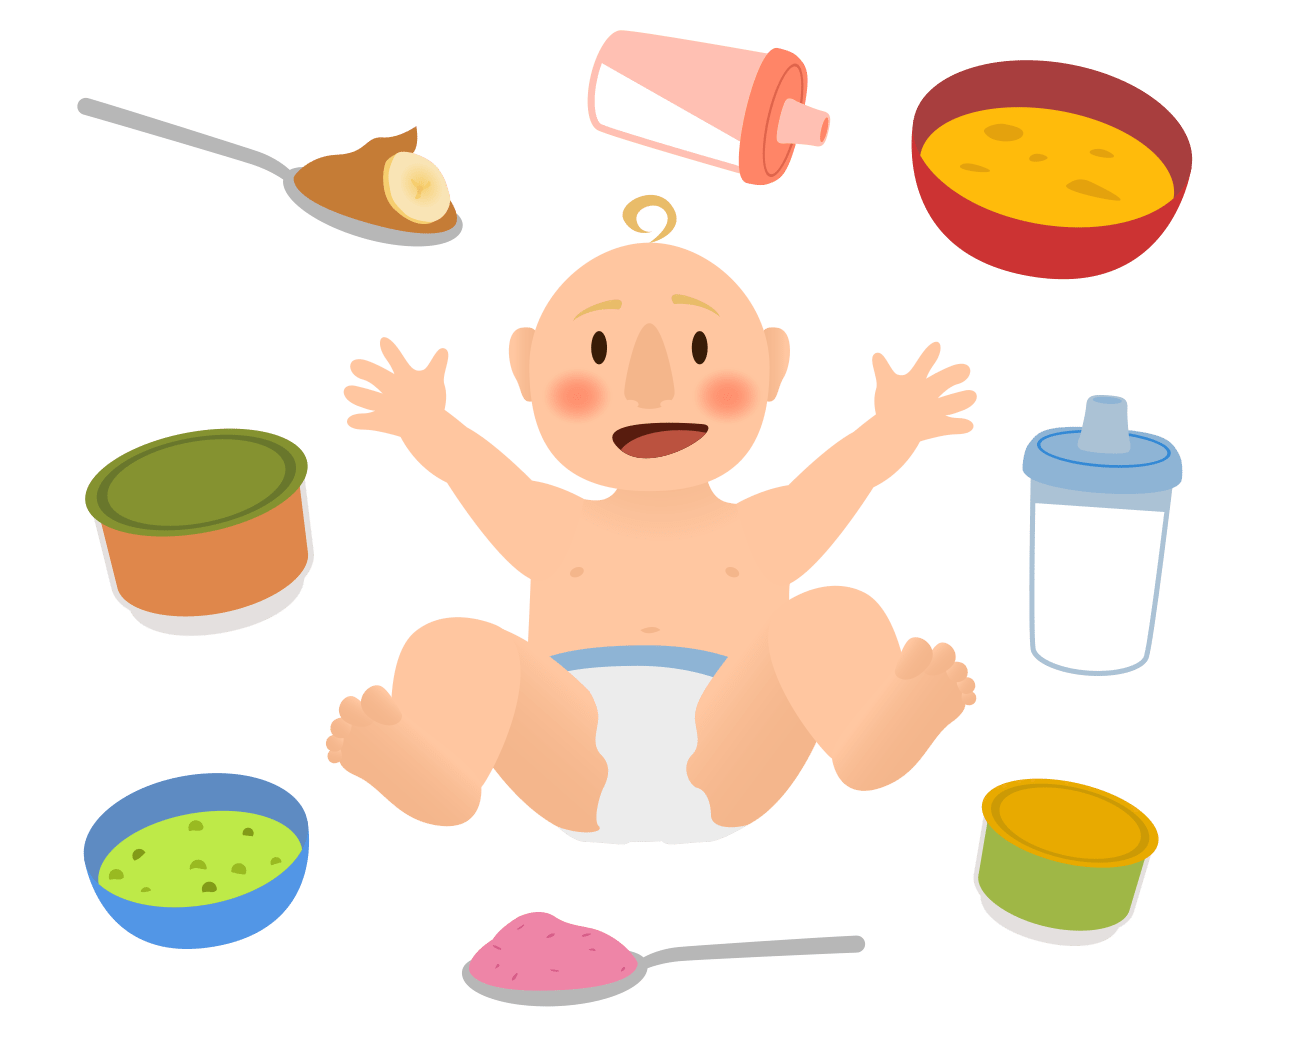 Infant clipart lot baby. Cafeteria child nutrition free